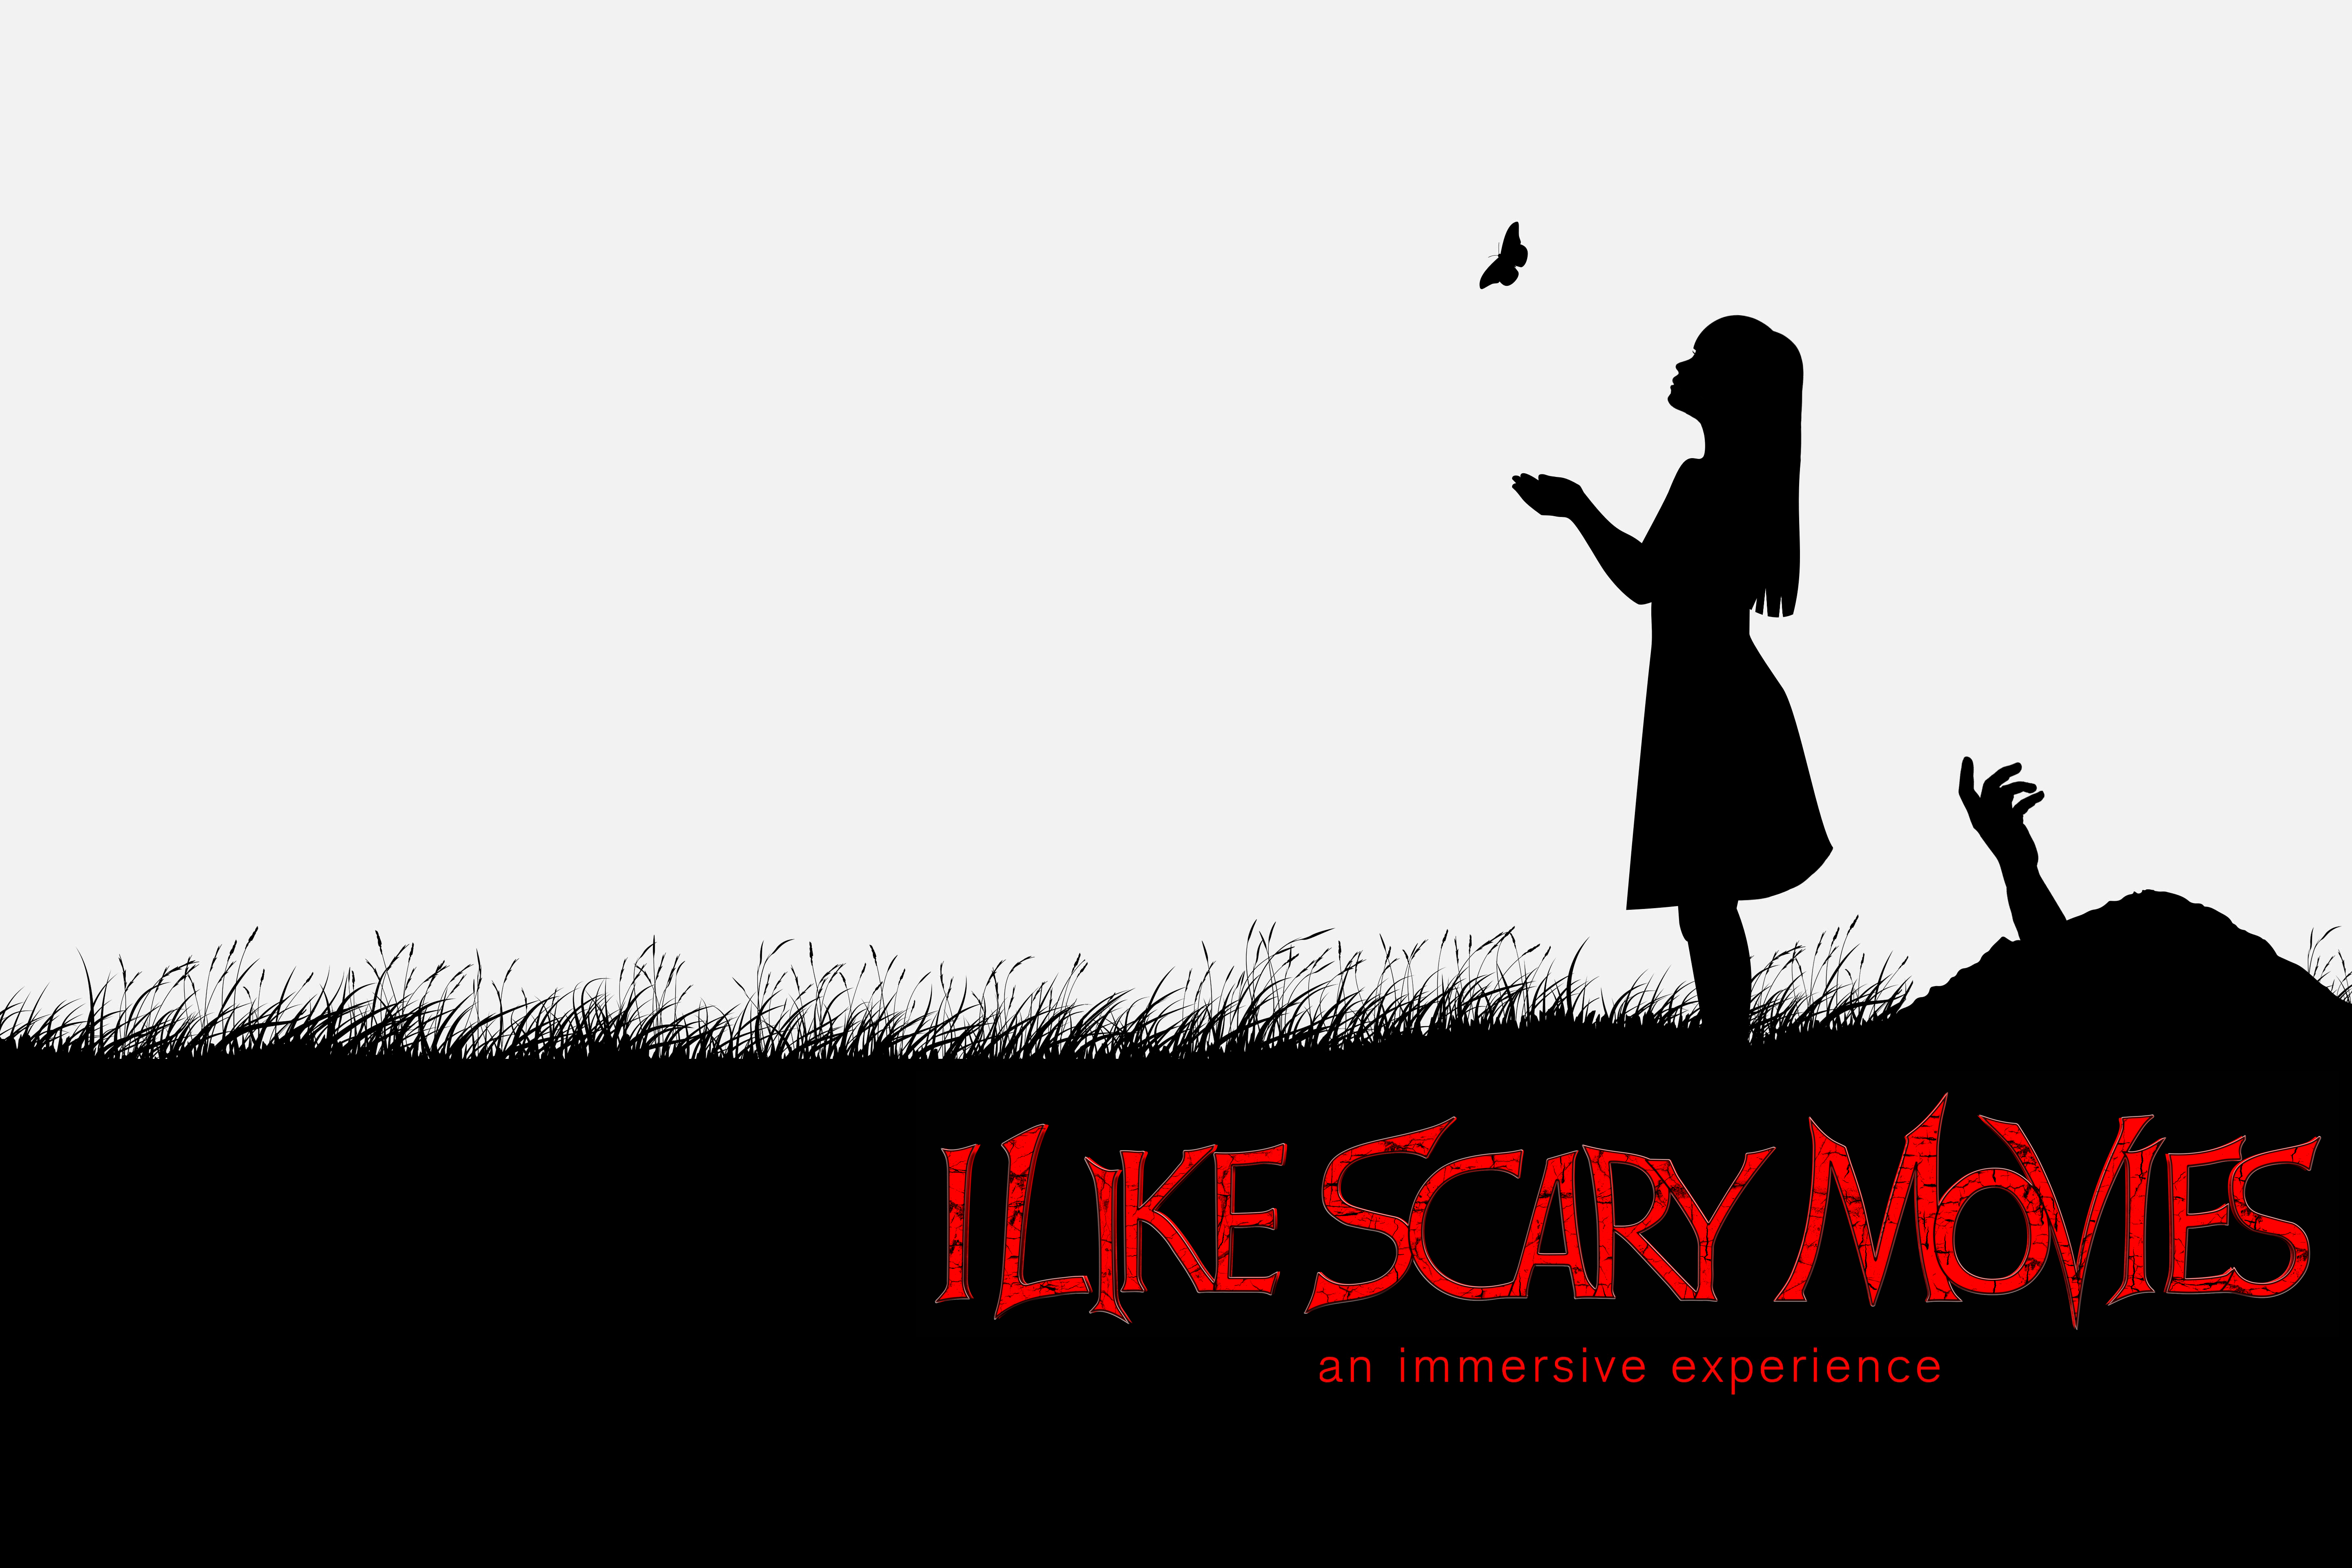 [News] Experience the I LIKE SCARY MOVIES Interactive Art Installation